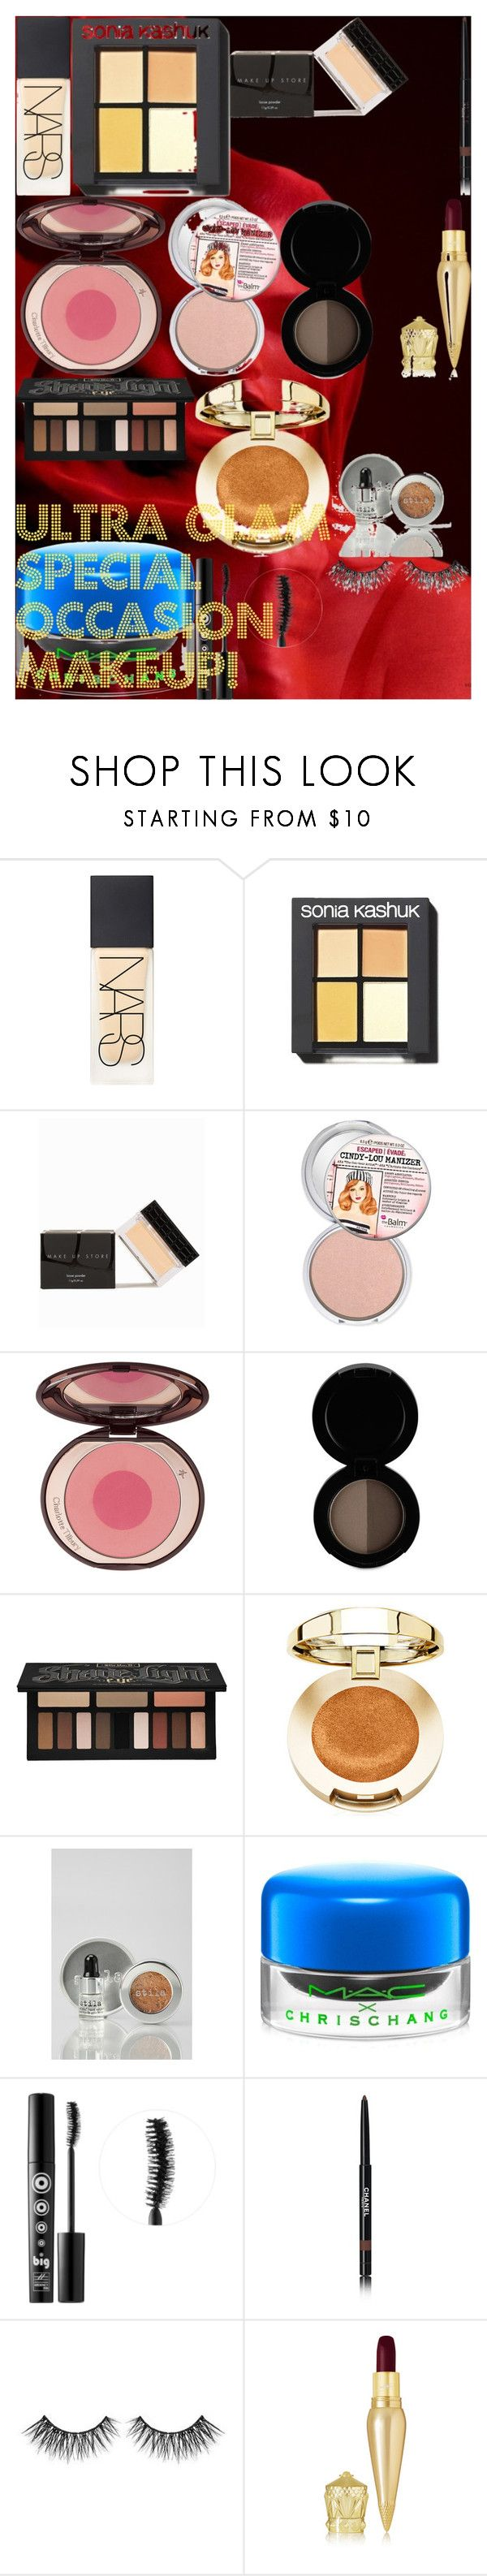 """ULTRA GLAM Special Occasion Makeup!"" by oroartye-1 on Polyvore featuring beauty, NARS Cosmetics, Sonia Kashuk, MAKE UP STORE, Charlotte Tilbury, Kat Von D, Stila, MAC Cosmetics, Ardency Inn and Chanel"